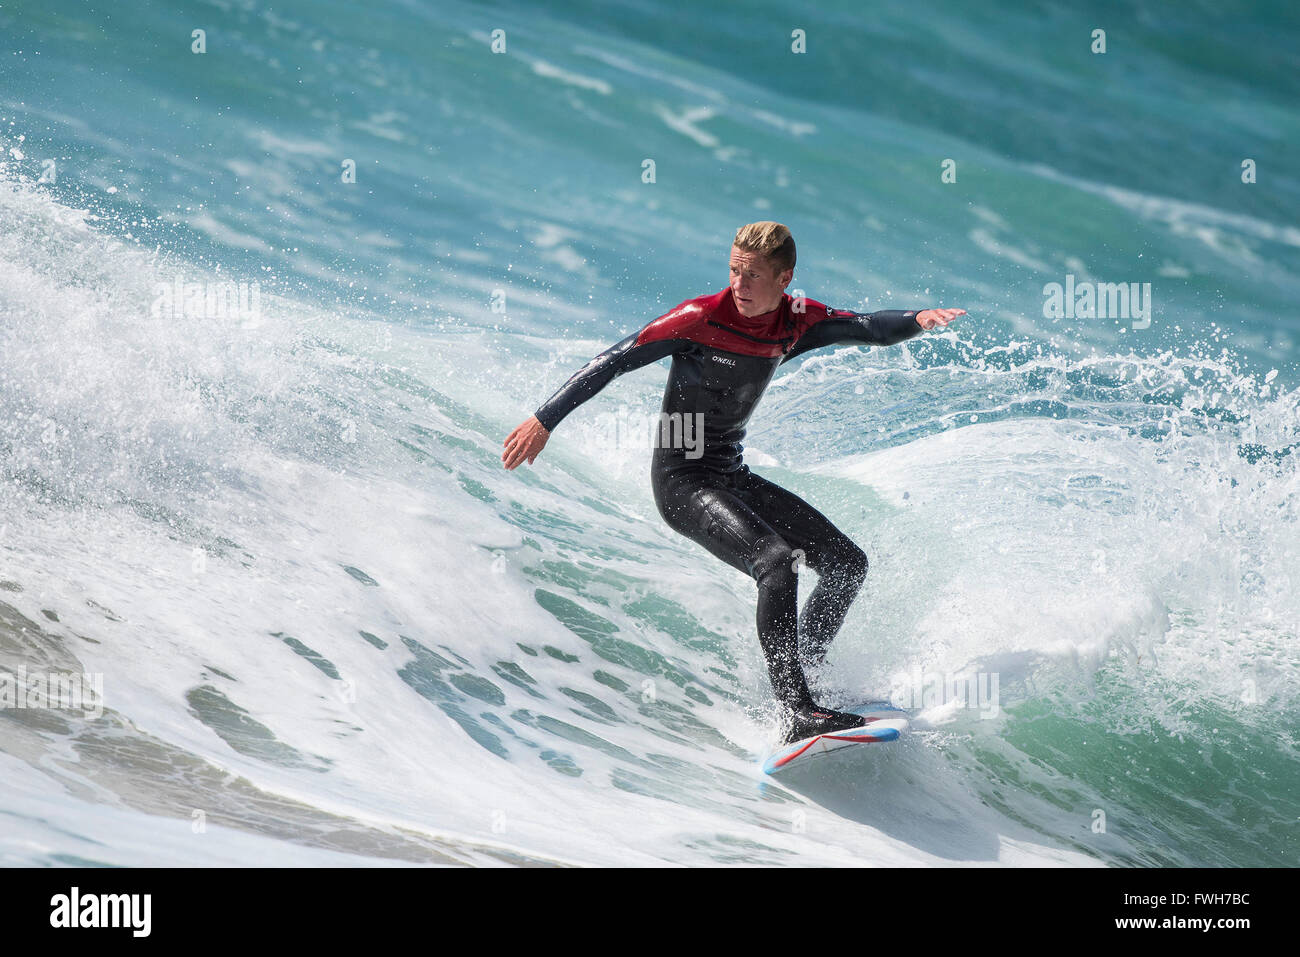 Fistral Beach, Newquay, Cornwall, 5th April 2016. UK Weather: Noah Anstis, a local surfer aged 16, enjoys the windy - Stock Image